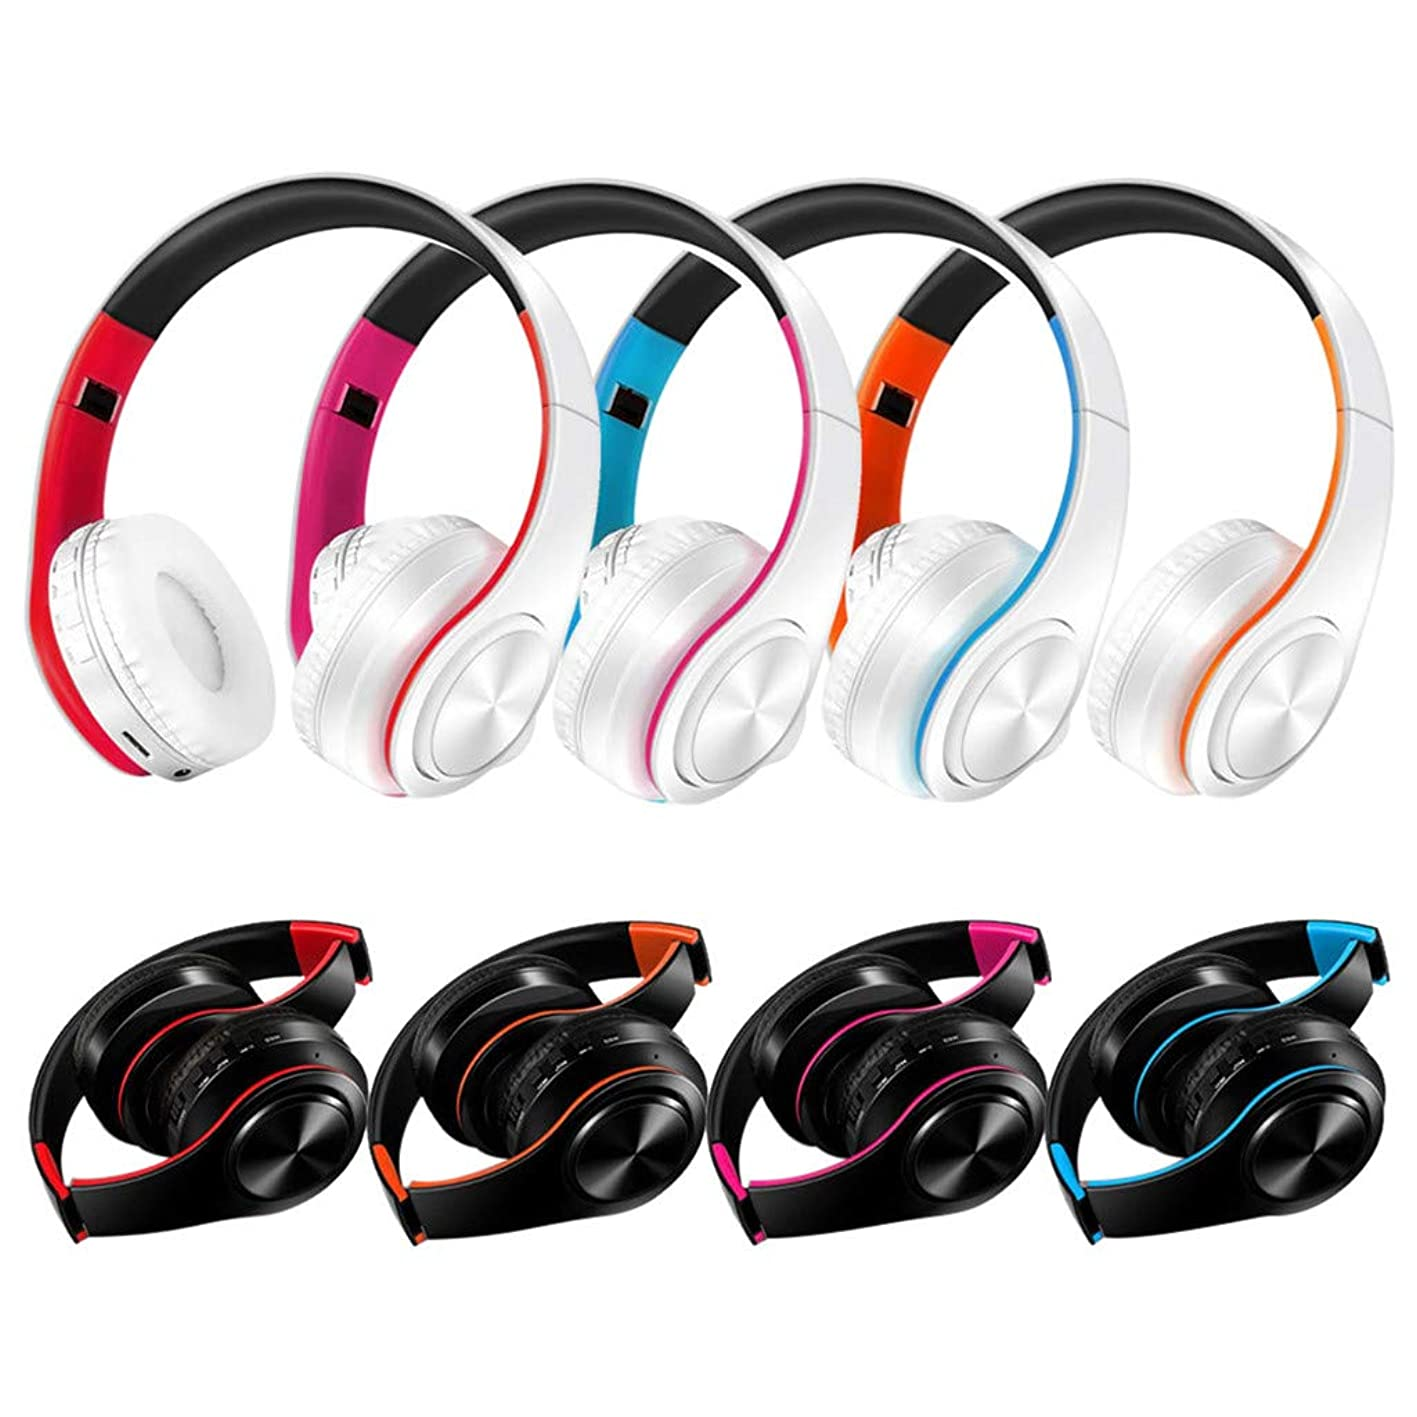 Stereo Gaming headsets Noise Canceling Mic Bass Surround USB Colorful Breath Light Music, Movies Wireless for Bluetooth Foldable Headset Stereo Headphone Earphone for Samsung HOT hsmfcszavvx091